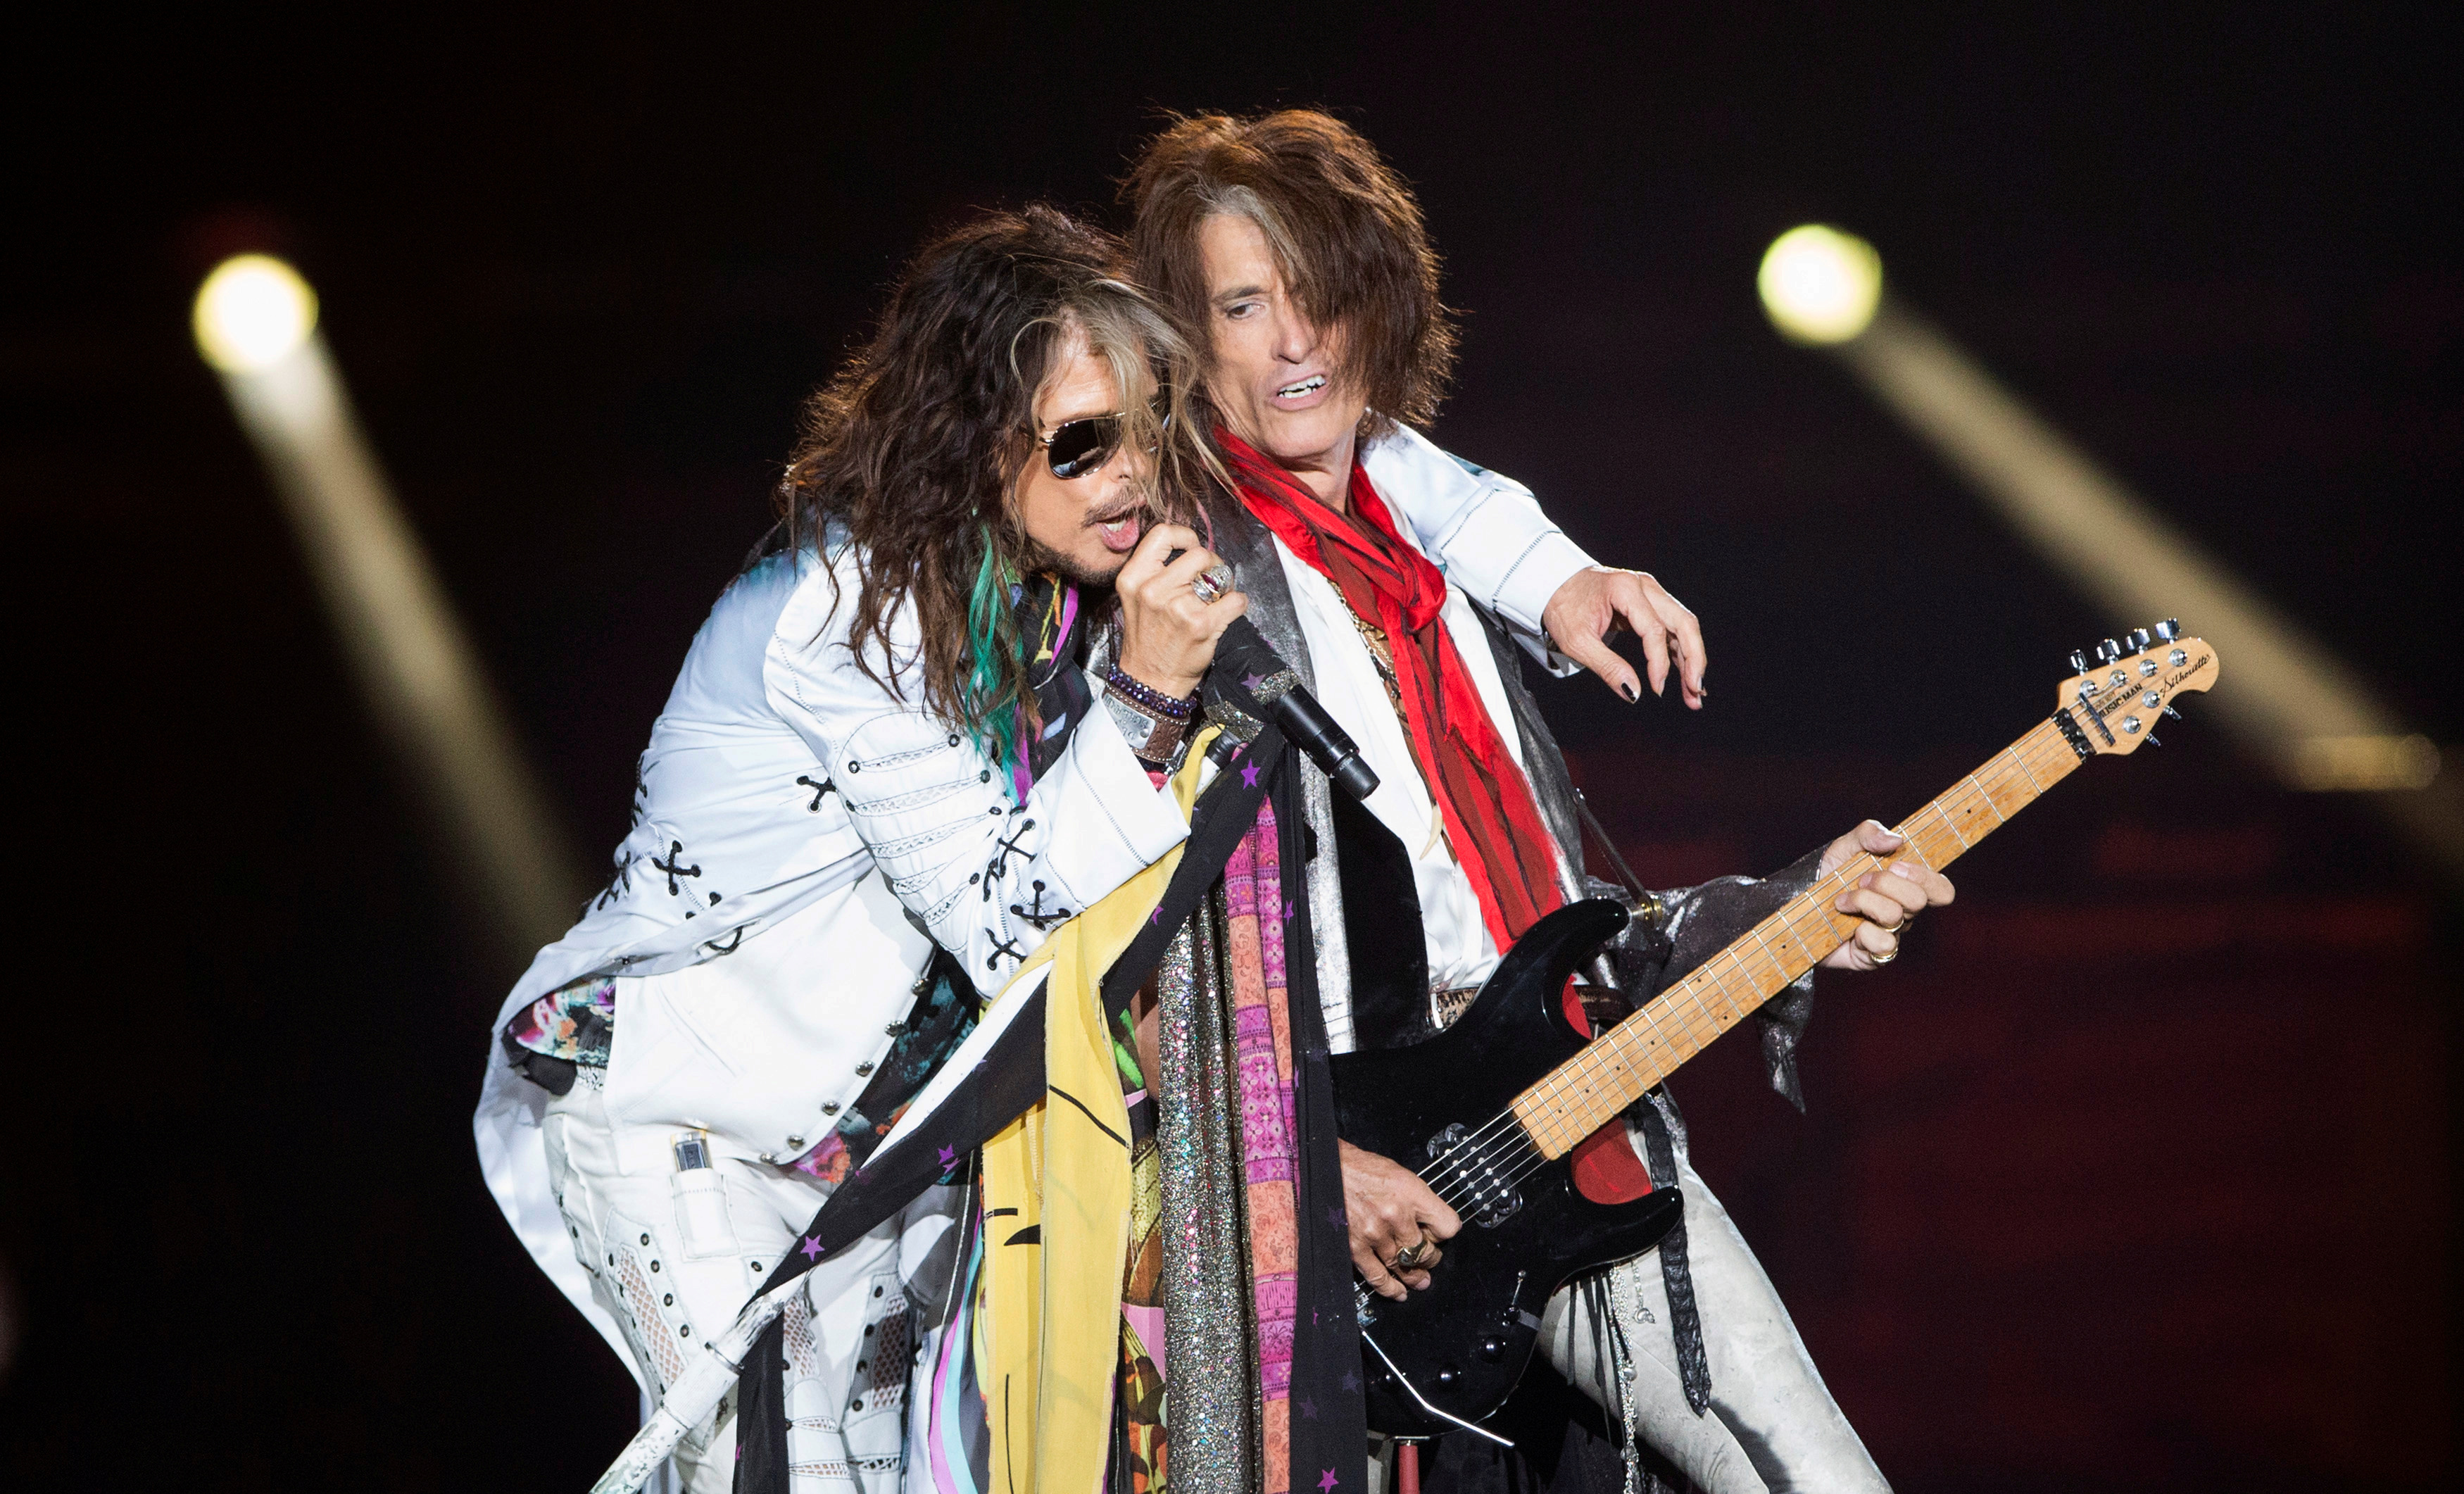 Aerosmith Cancel Tour Dates Due to Steven Tyler's Undisclosed Medical Issues